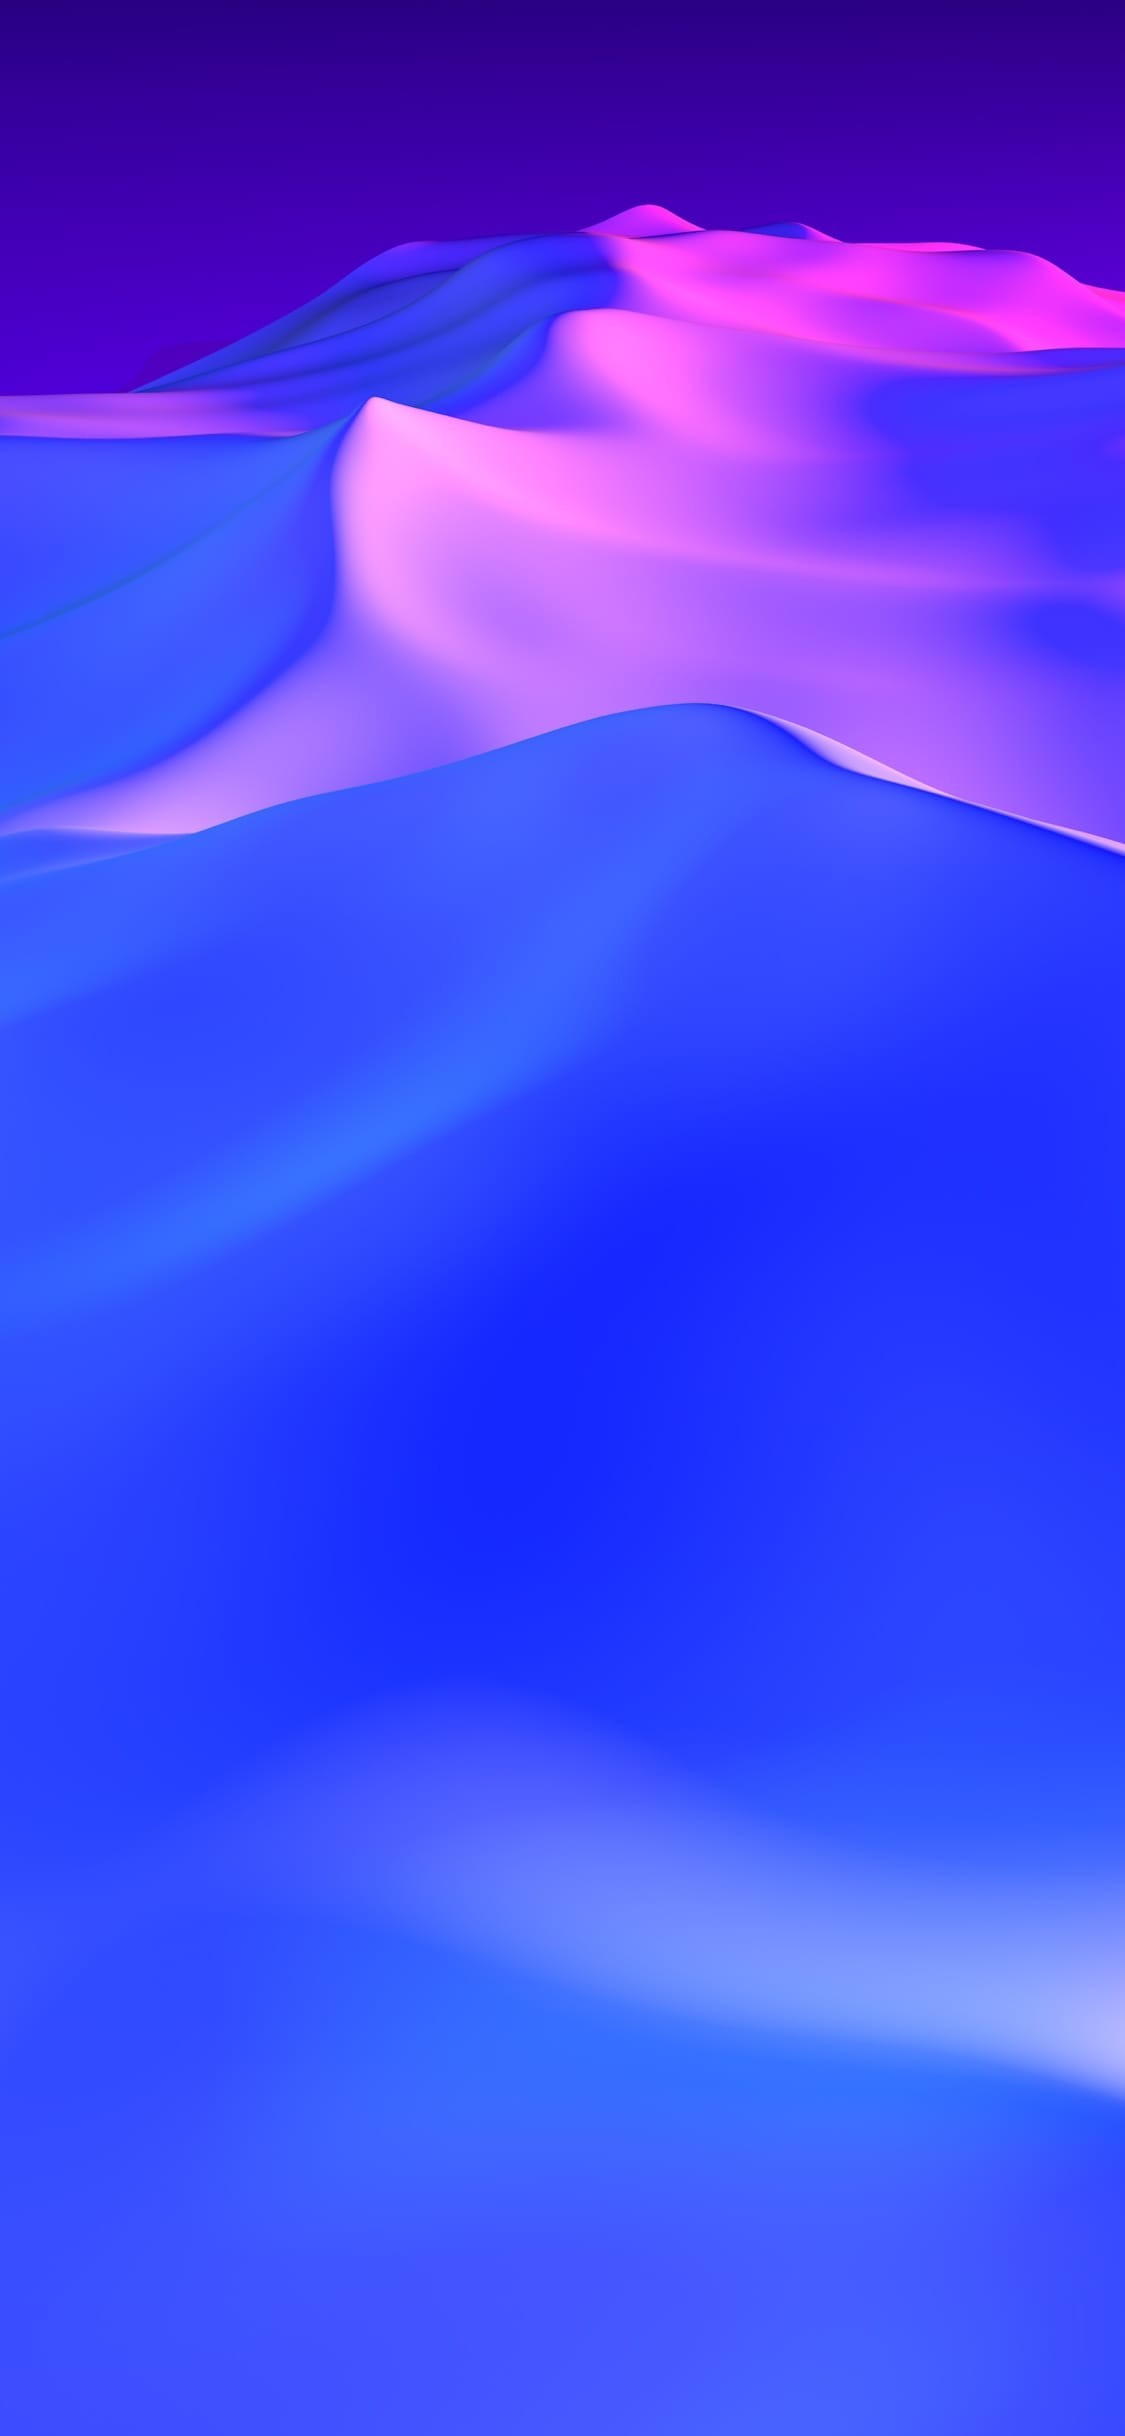 1125x2436 High-resolution wallpapers for your shiny new iPhone X.